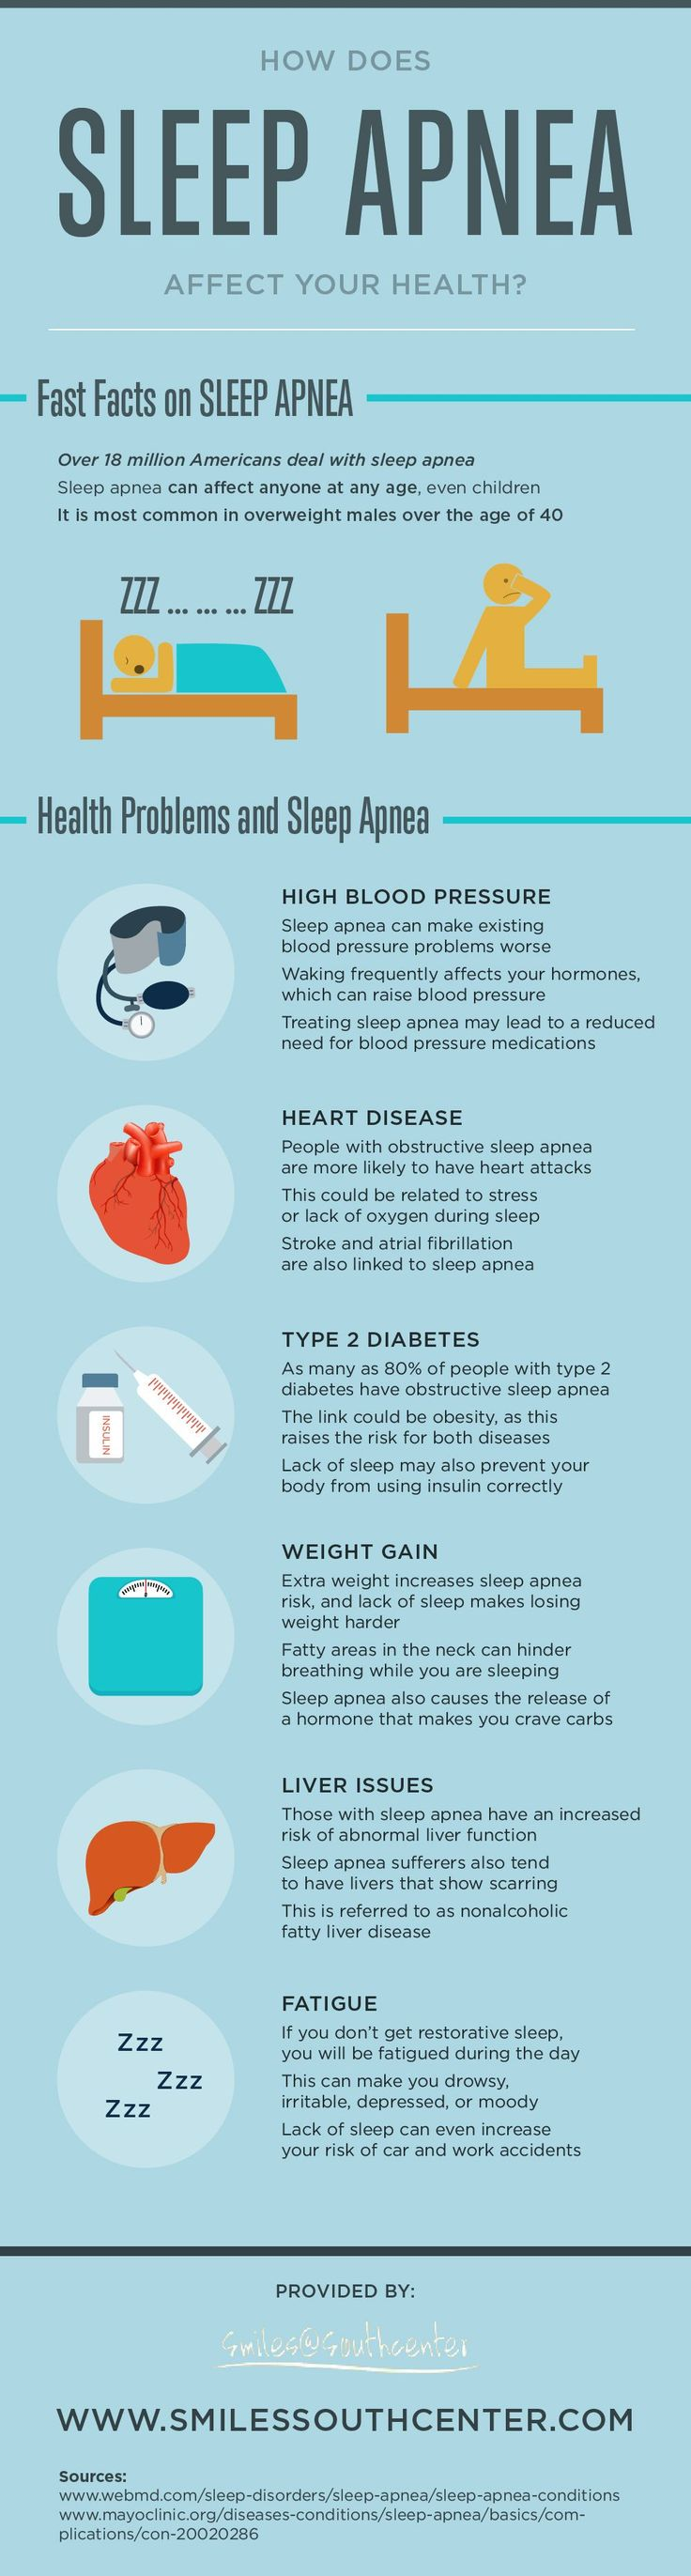 Sleep apnea is linked to a multitude of serious conditions including heart disease, depression, and type 2 diabetes! Learn more by reading through this sleep apnea infographic. #Infographic #Data visualization #Cpap #Sleep Apnea #Snoring Remedies #Sleep Apnea Mask